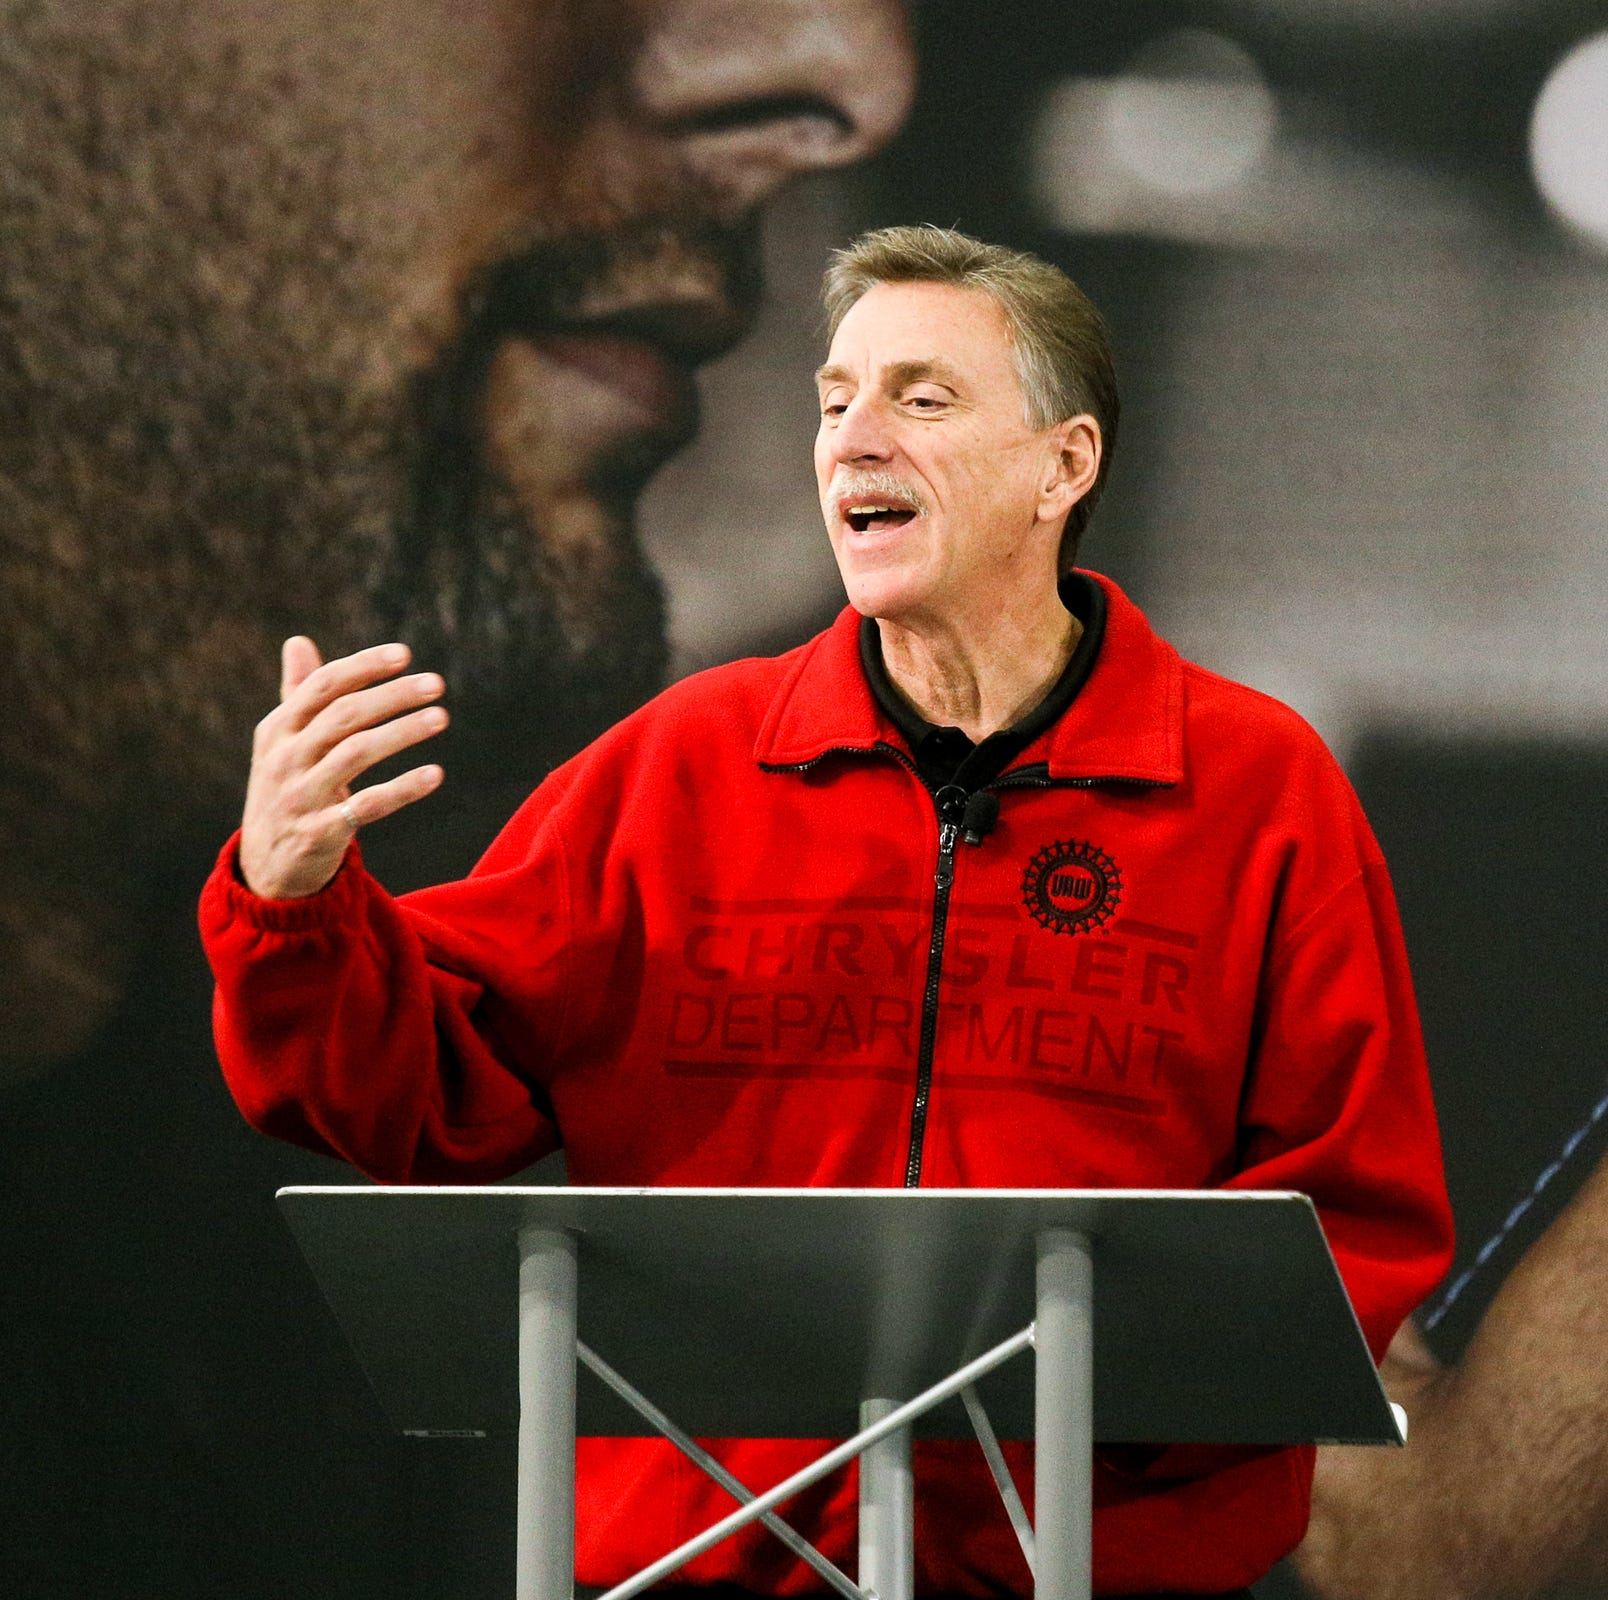 Former UAW Vice President Norwood Jewell charged in FCA/UAW scandal